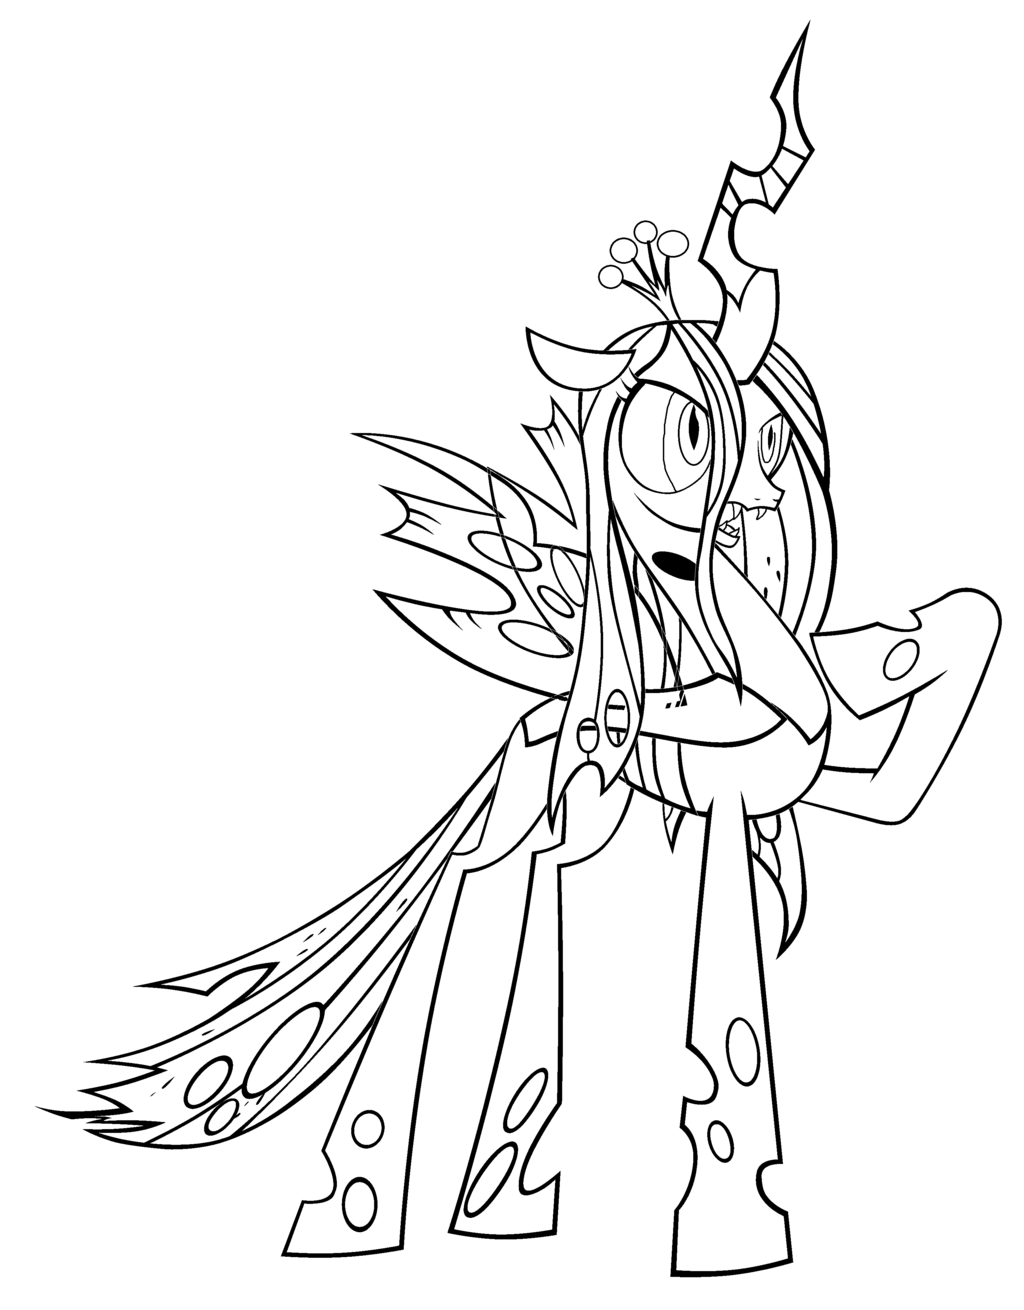 Queen Chrysalis coloring #13, Download drawings